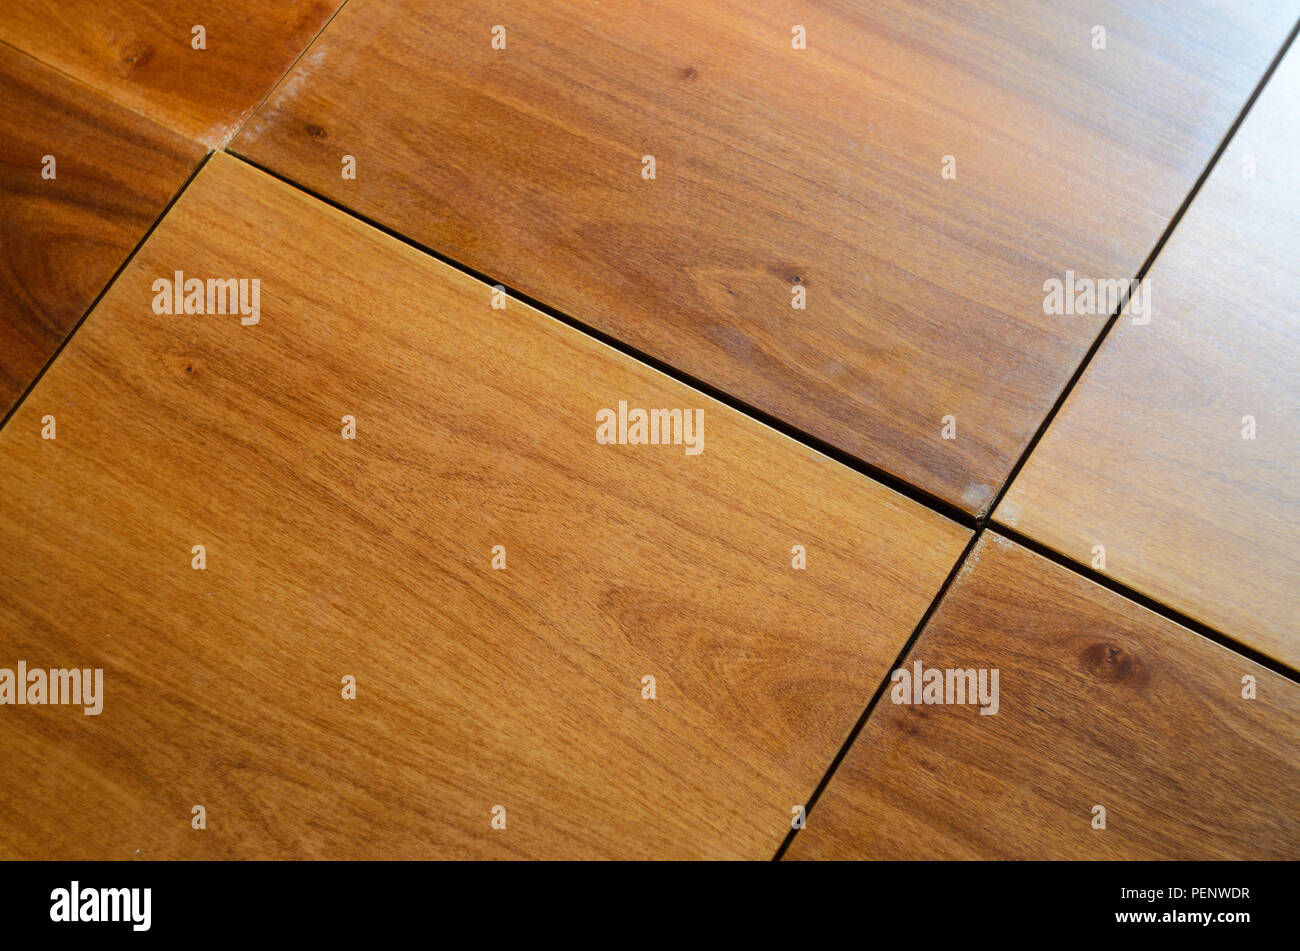 Veneer Sheet Stock Photos Veneer Sheet Stock Images Alamy